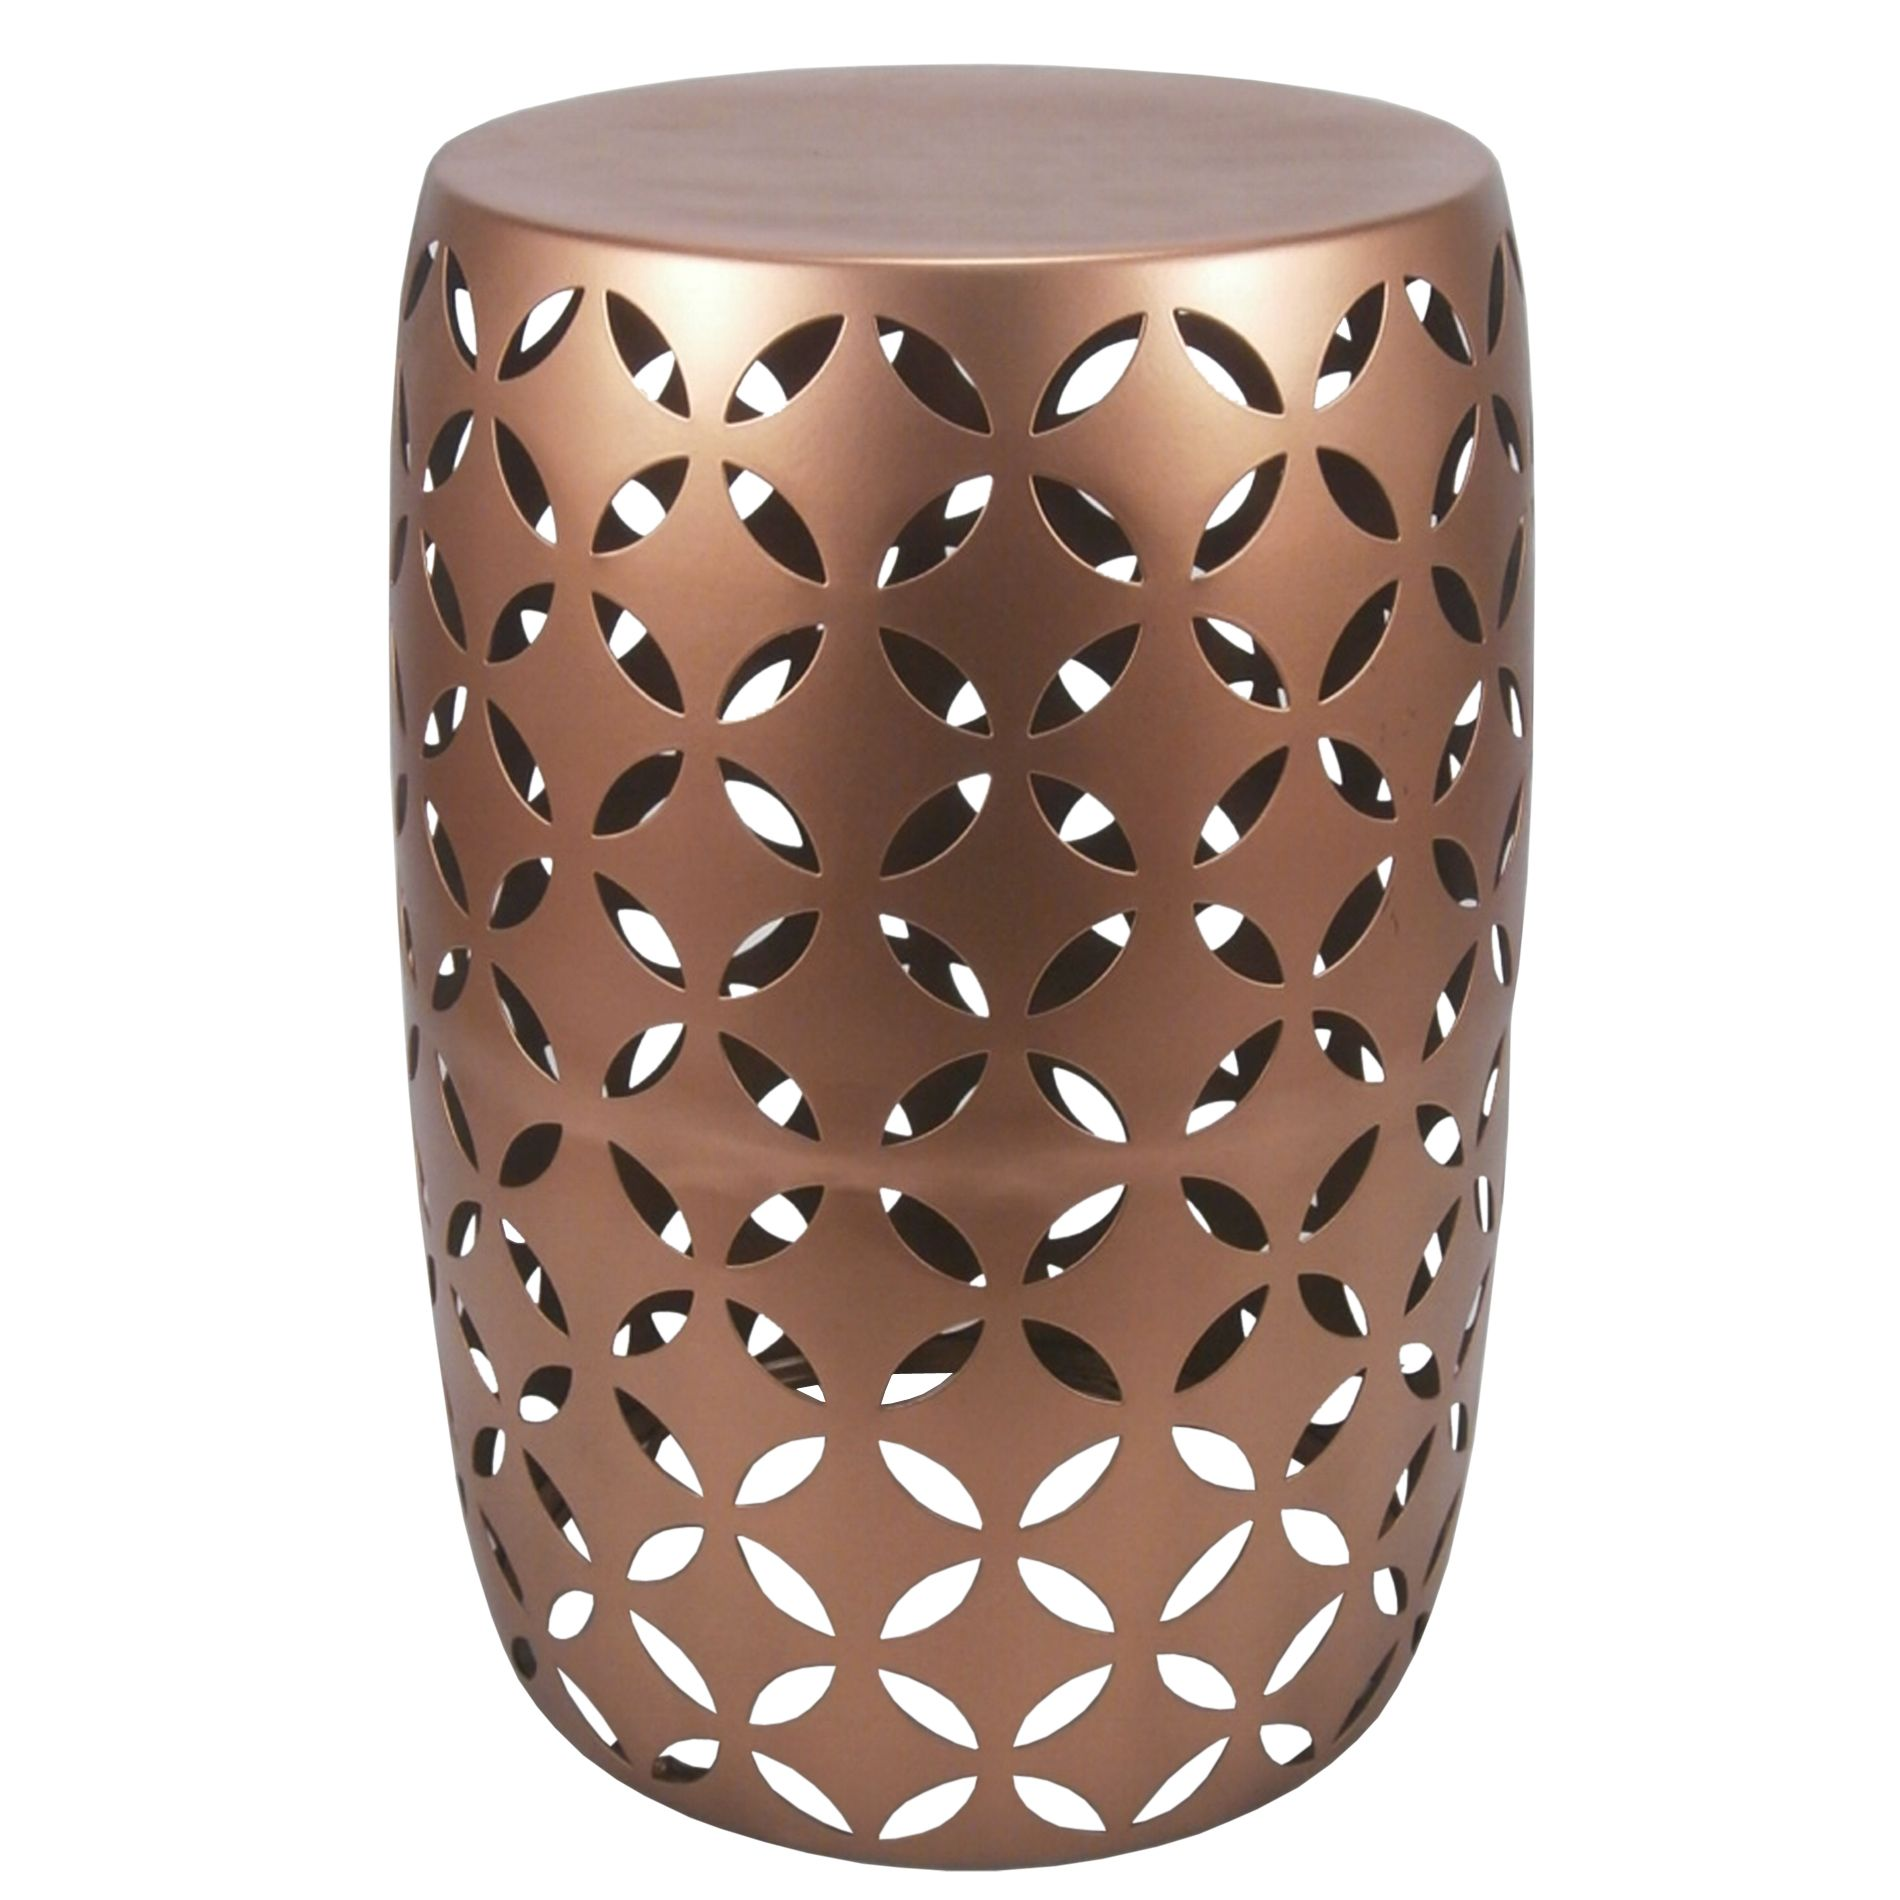 Made From Polished Metal With An Eye Catching Cutout Pattern Throughout This Drum Shaped Accent Table Takes Little